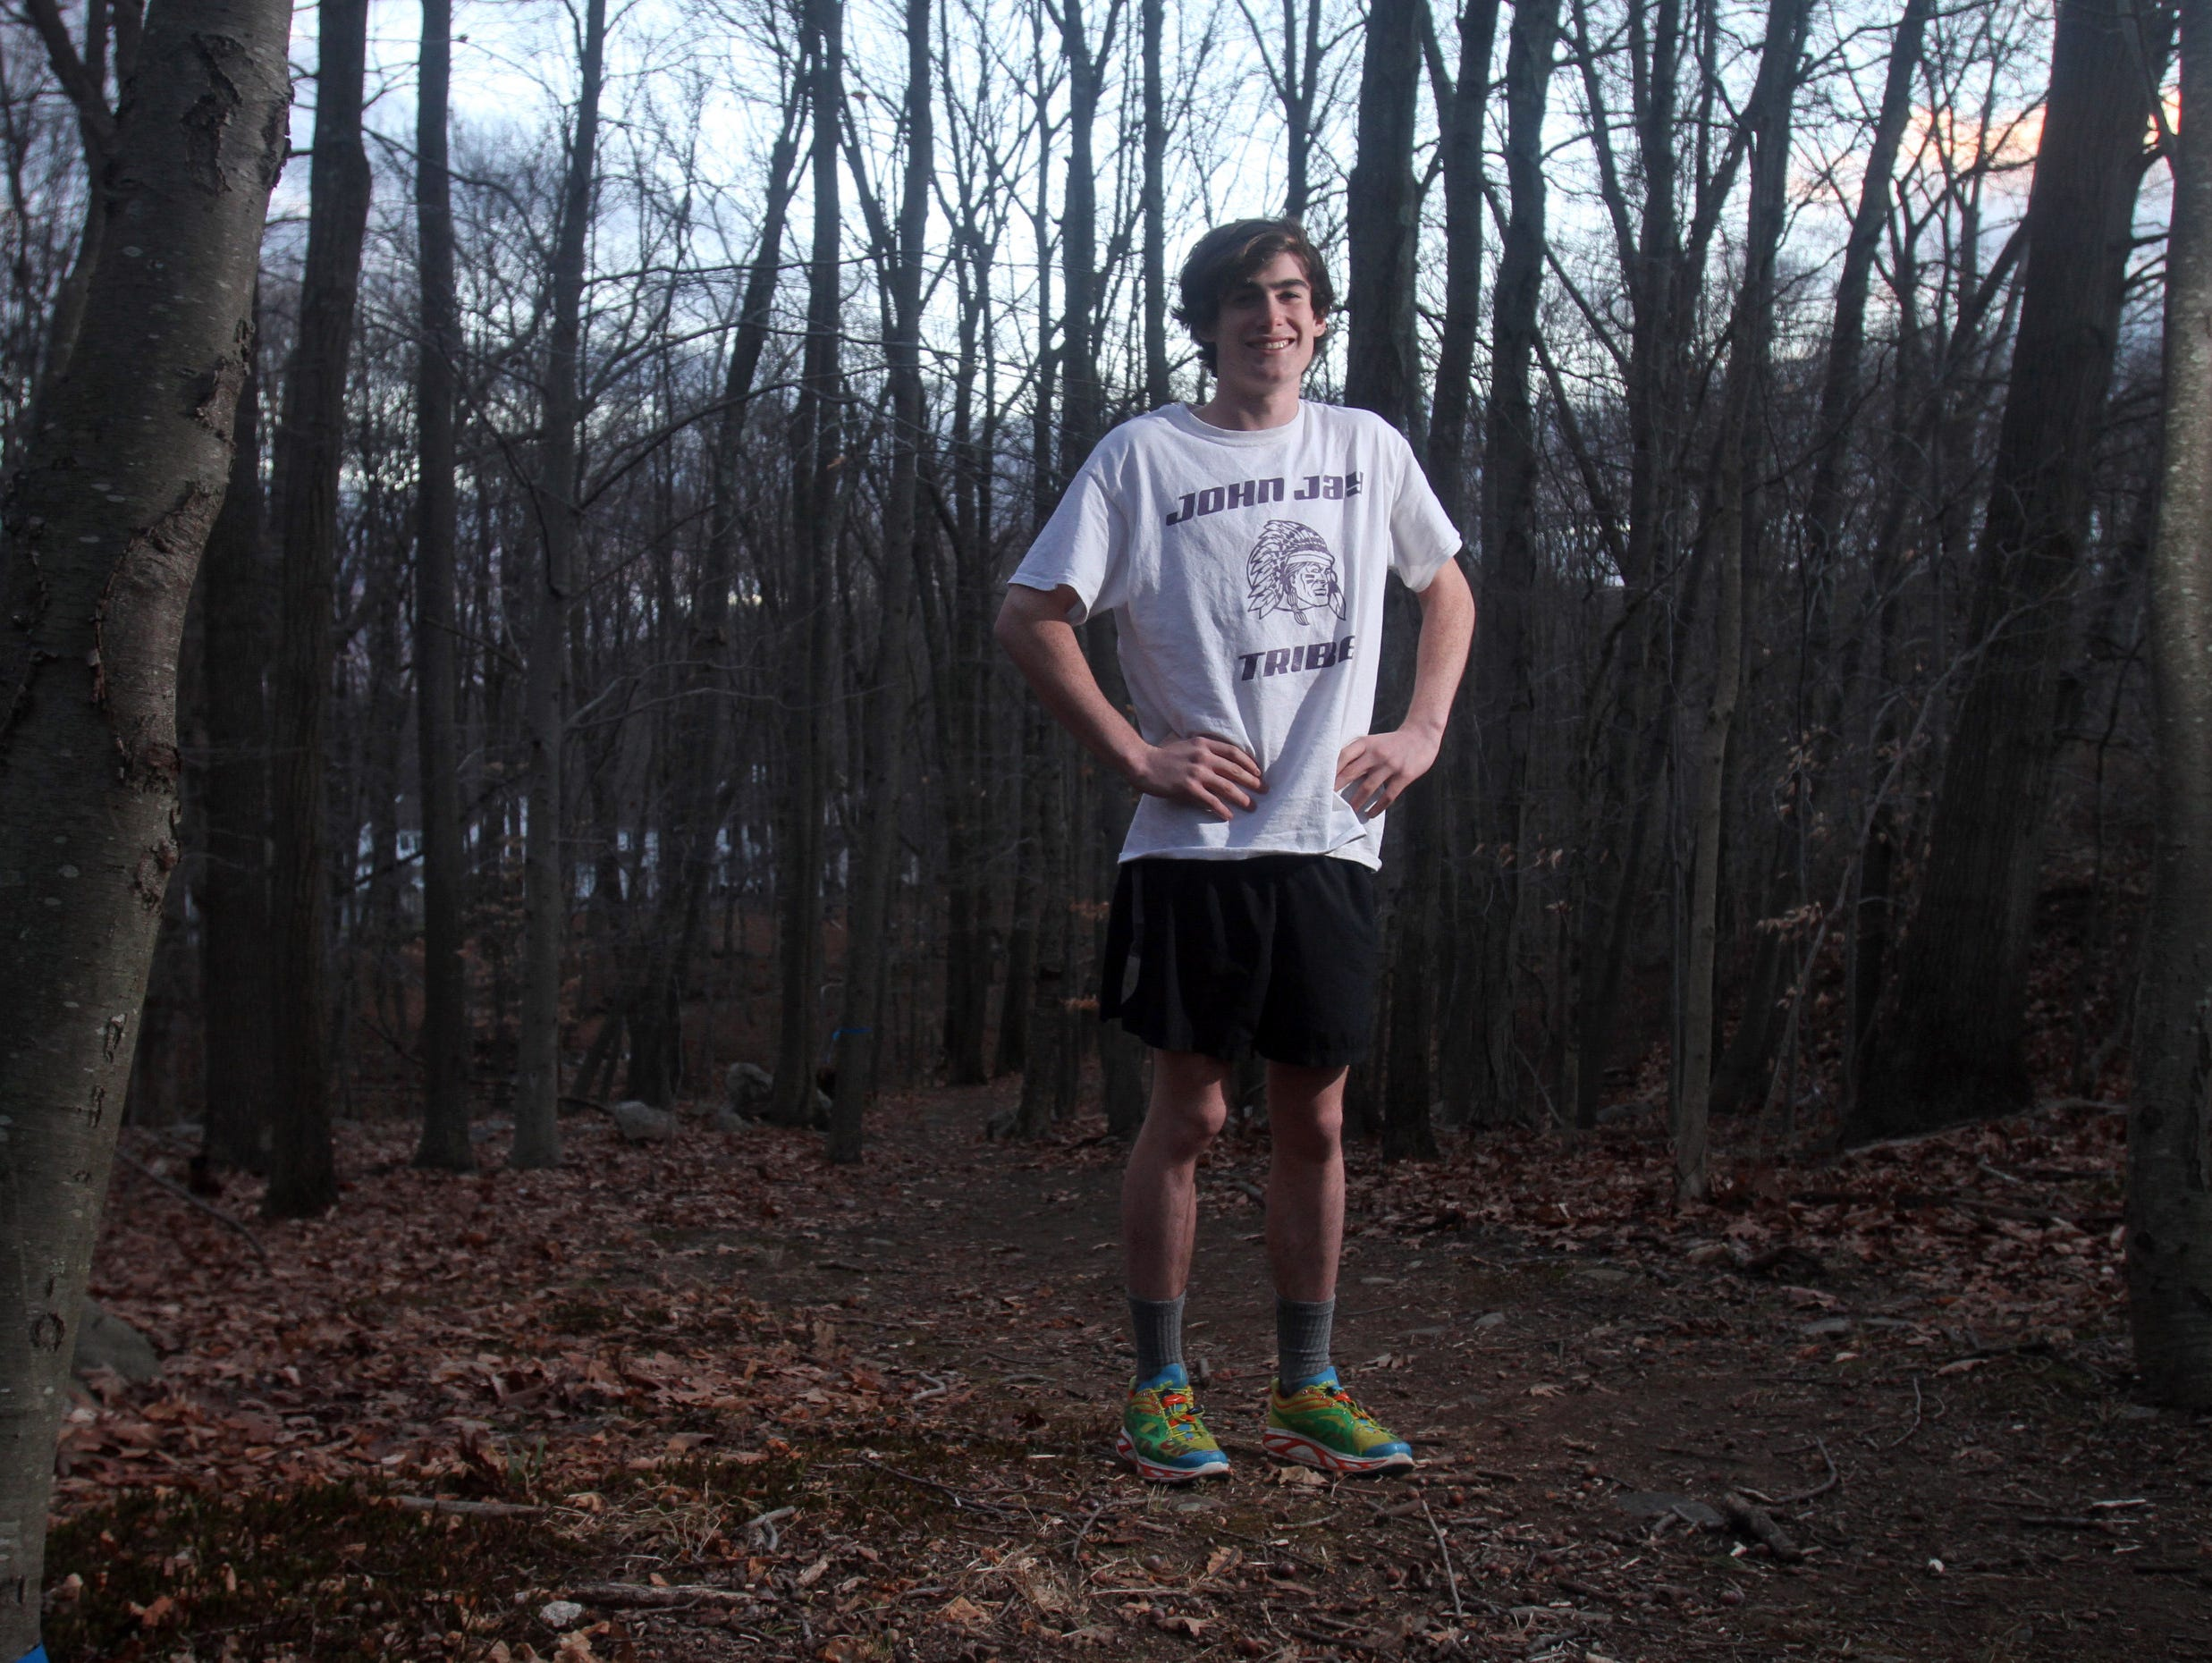 Eion Nohilly, a senior at John Jay-Cross River High School, is the Journal News Westchester/Putnam boys cross-country runner of the year. Nohilly won six major meets, including the Section 1 Coaches Invitational, Westchester County Championship and Section 1 Championship, all in personal-record times for those races.